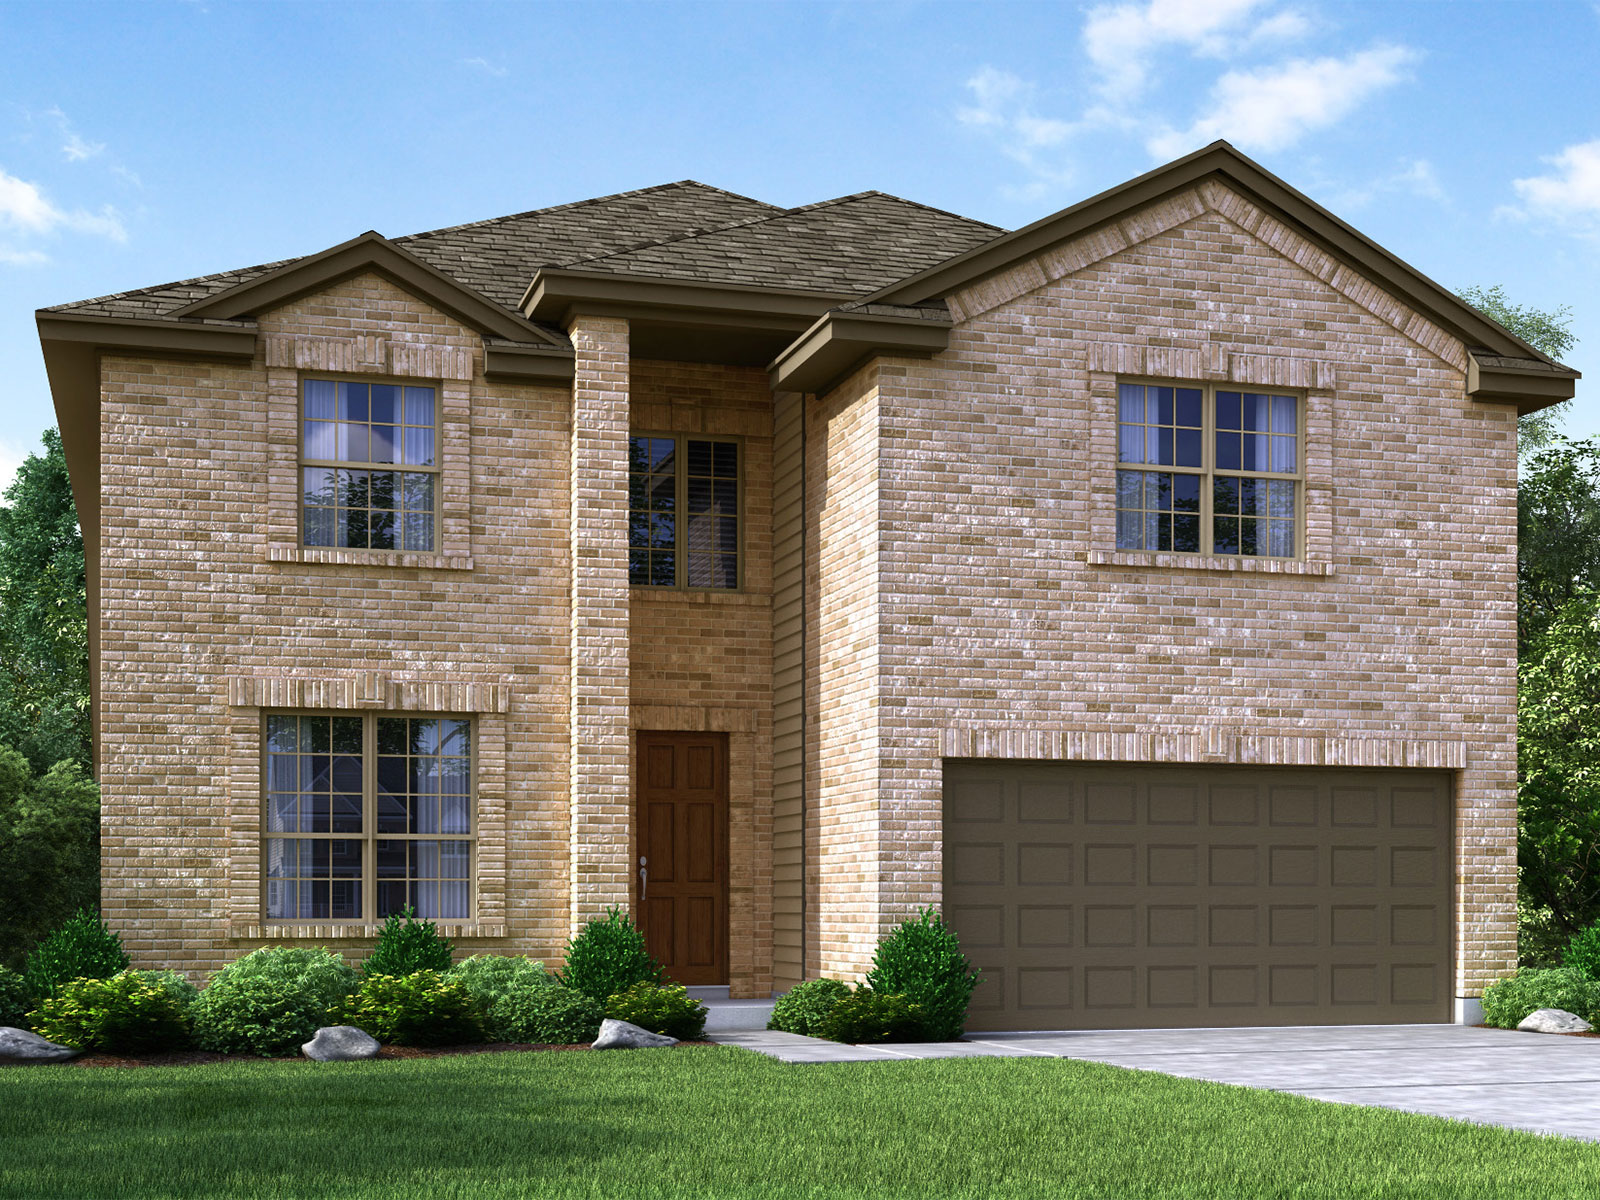 The Trinidad 4L85 Model – 4BR 4BA Homes for Sale in Cypress TX